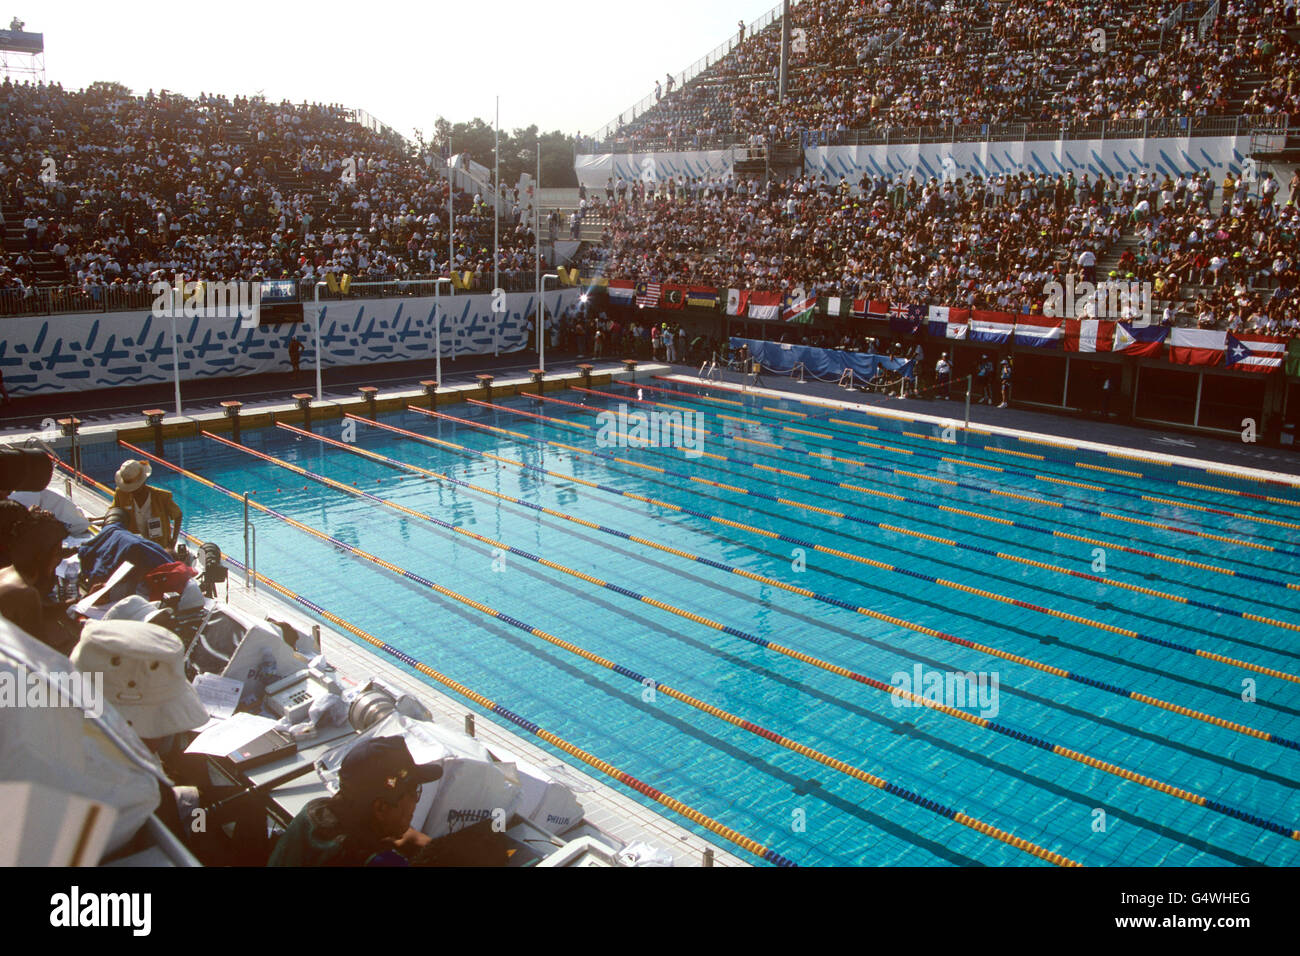 Barcelona olympic games 1992 swimming piscines bernat picornell stock photo 106283368 alamy - Piscines municipals barcelona ...